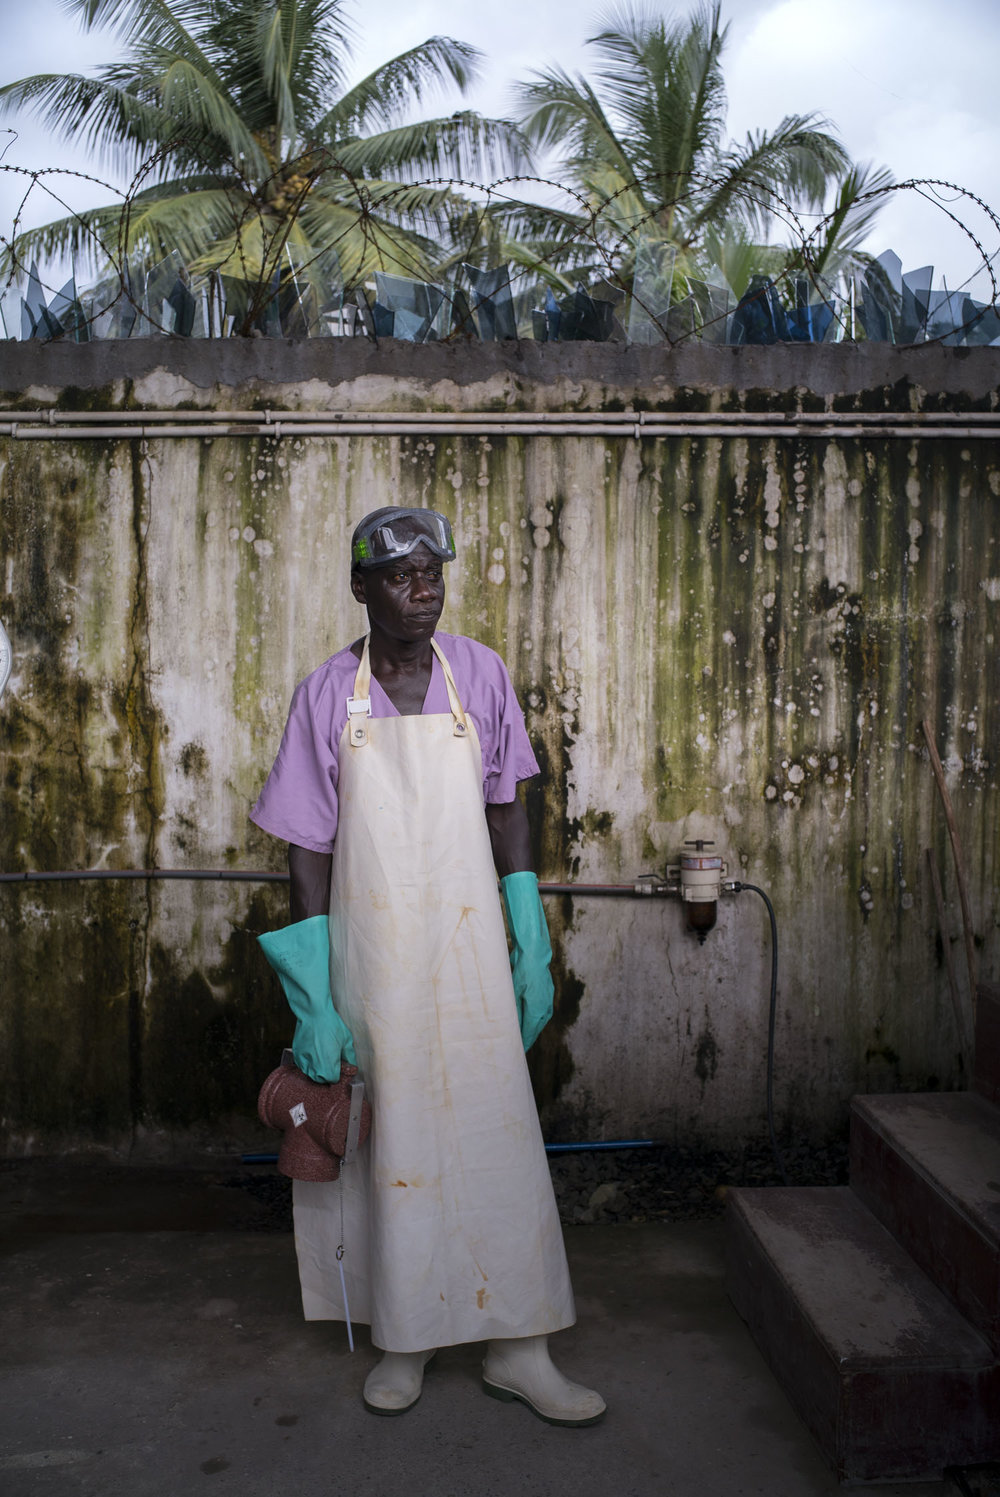 Alfred Walker, 52, Water and Sanitation Supervisor of an MSF hospital in Monrovia, Liberia, stands by the stairs leading to the incinerator, which is used for safe disposal of medical waste. In the aftermath of the the ebola epidemic of 2014/15 that left an estimated 4800 dead in Liberia, the hospital adheres to especially strict routine sanitation measures. Monrovia, Liberia. Sept. 28, 2016